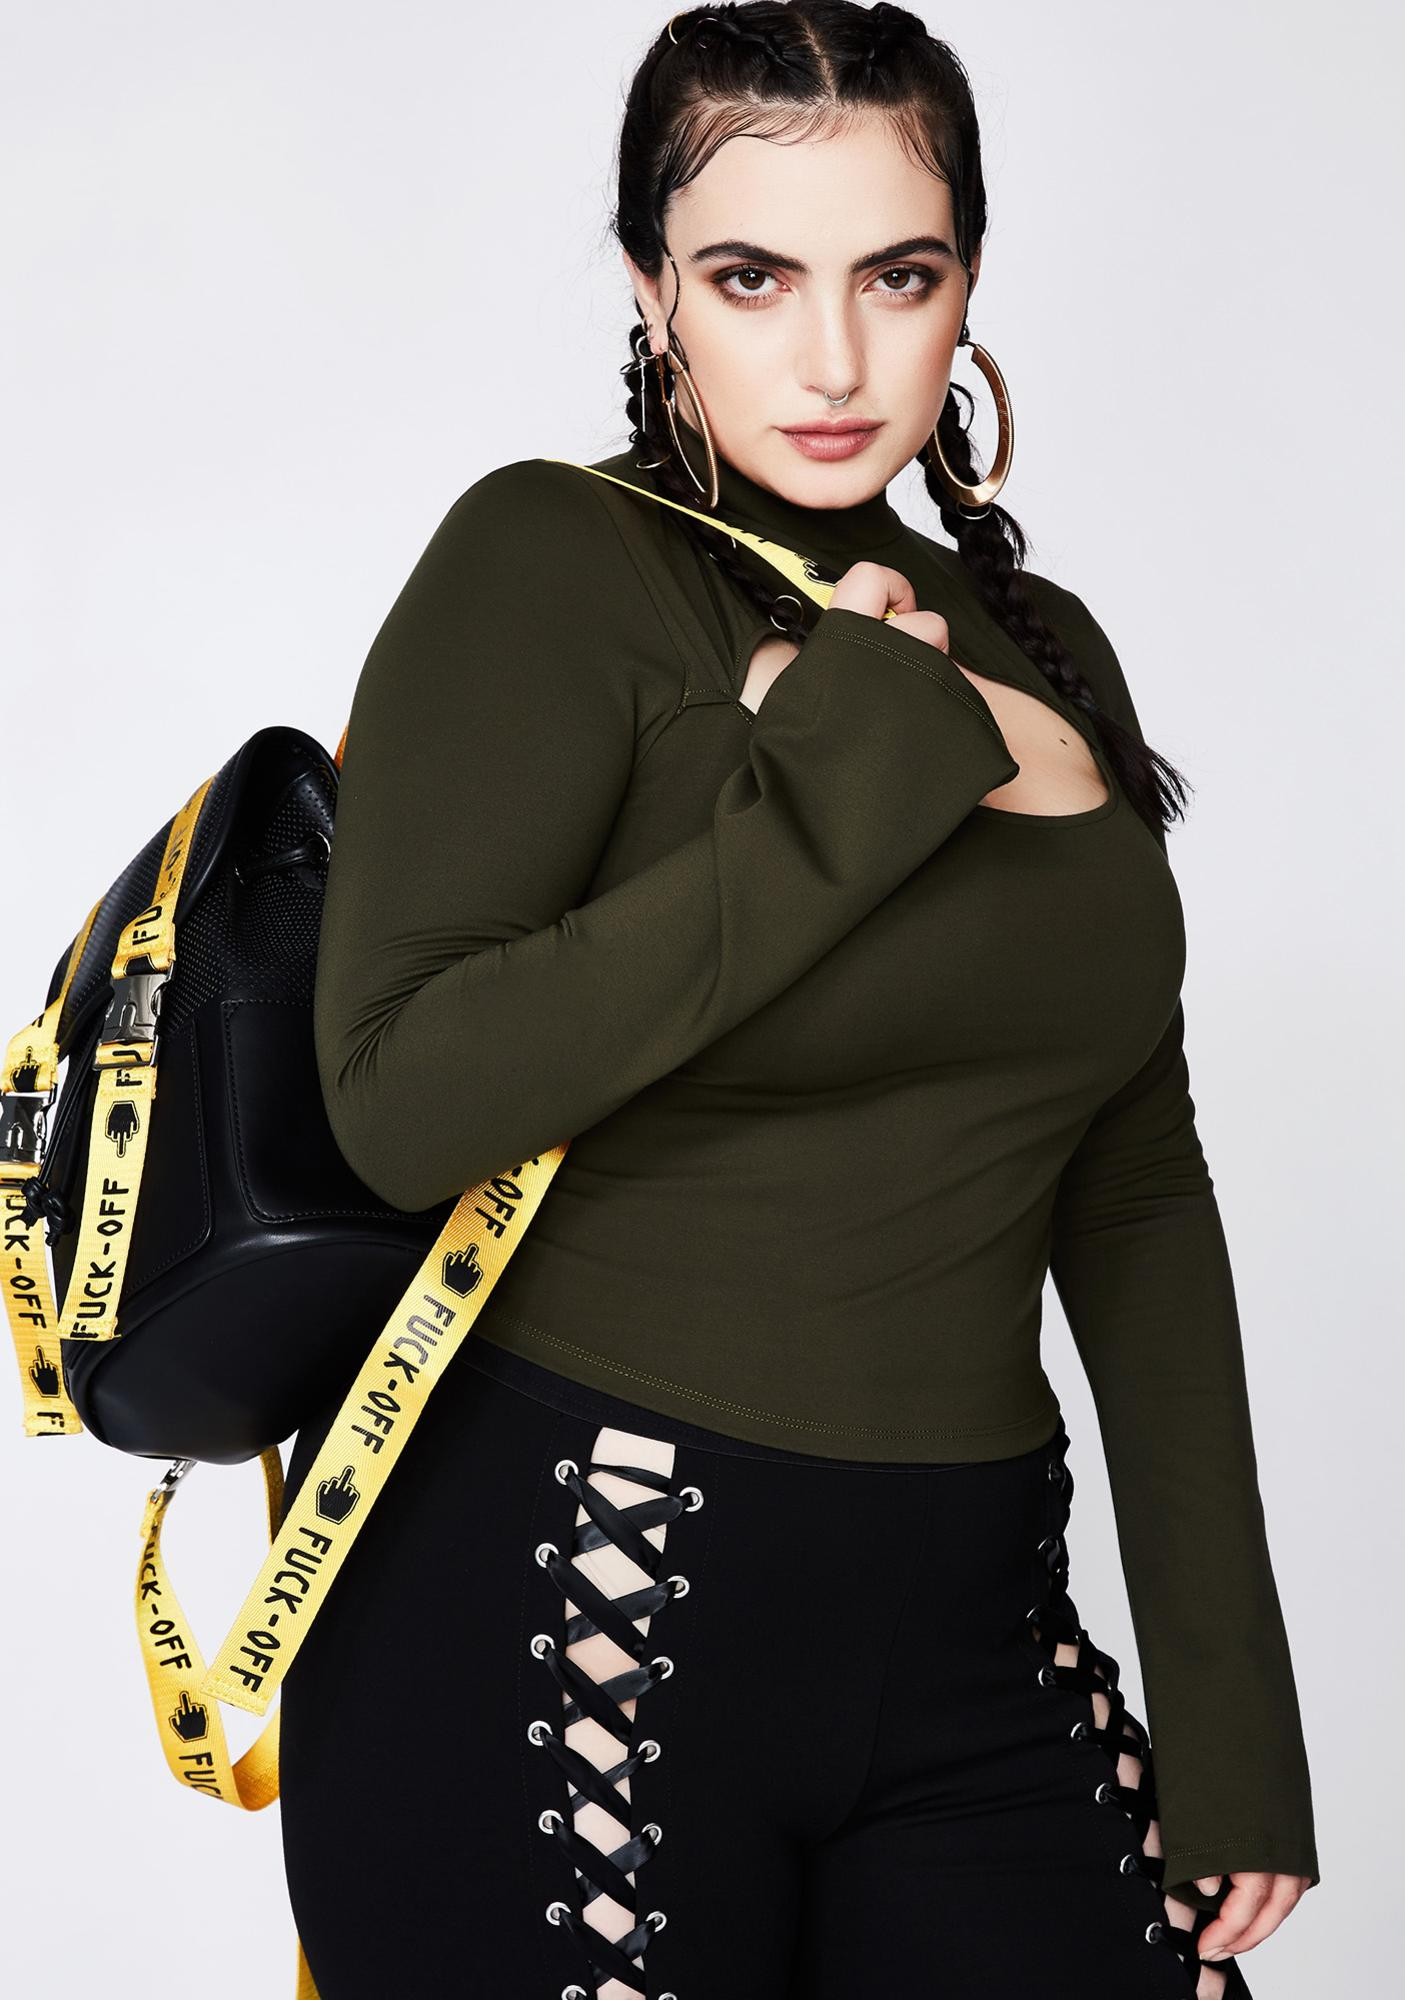 Poster Grl Army Push Your Luck Cut-Out Top